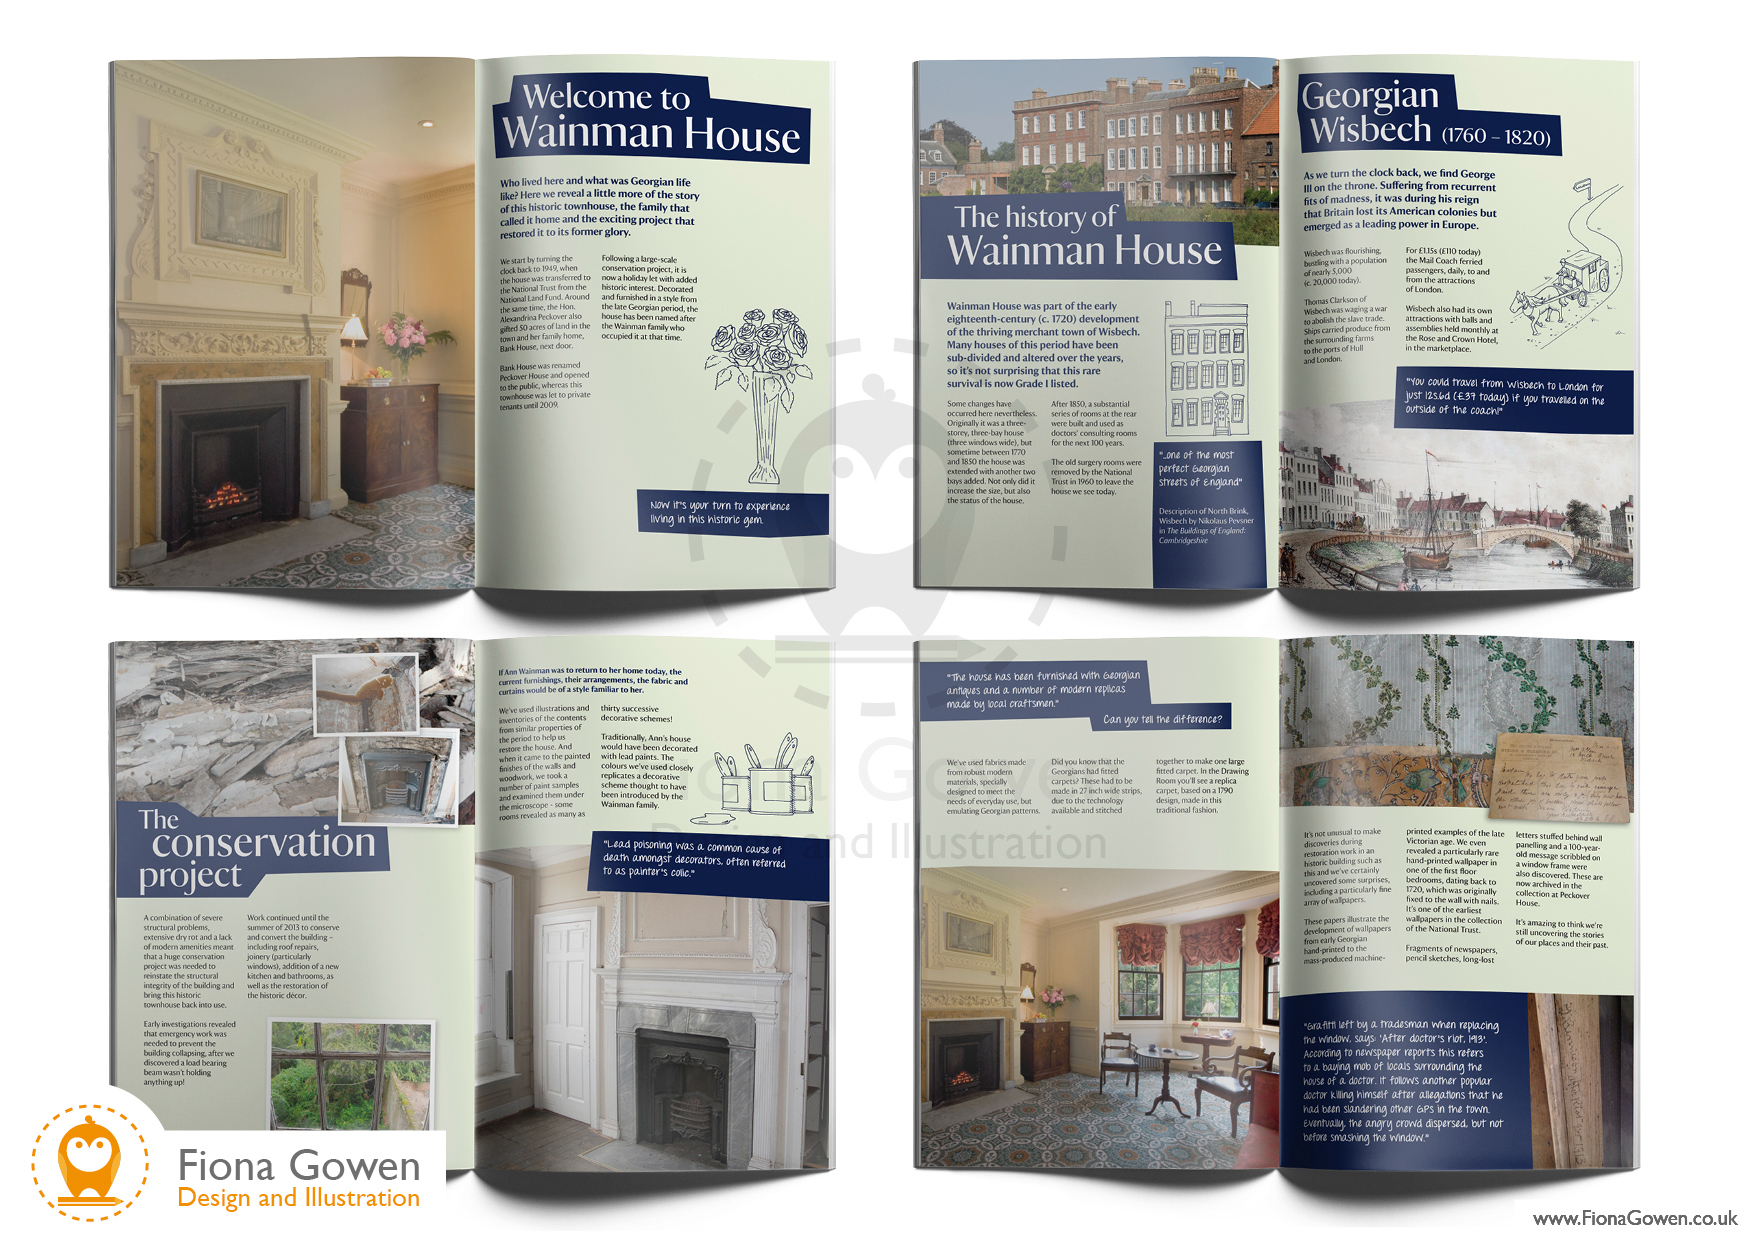 Wainman House National Trust Holiday Cottage guidebook. Interior spreads. Design and illustration by Fiona Gowen